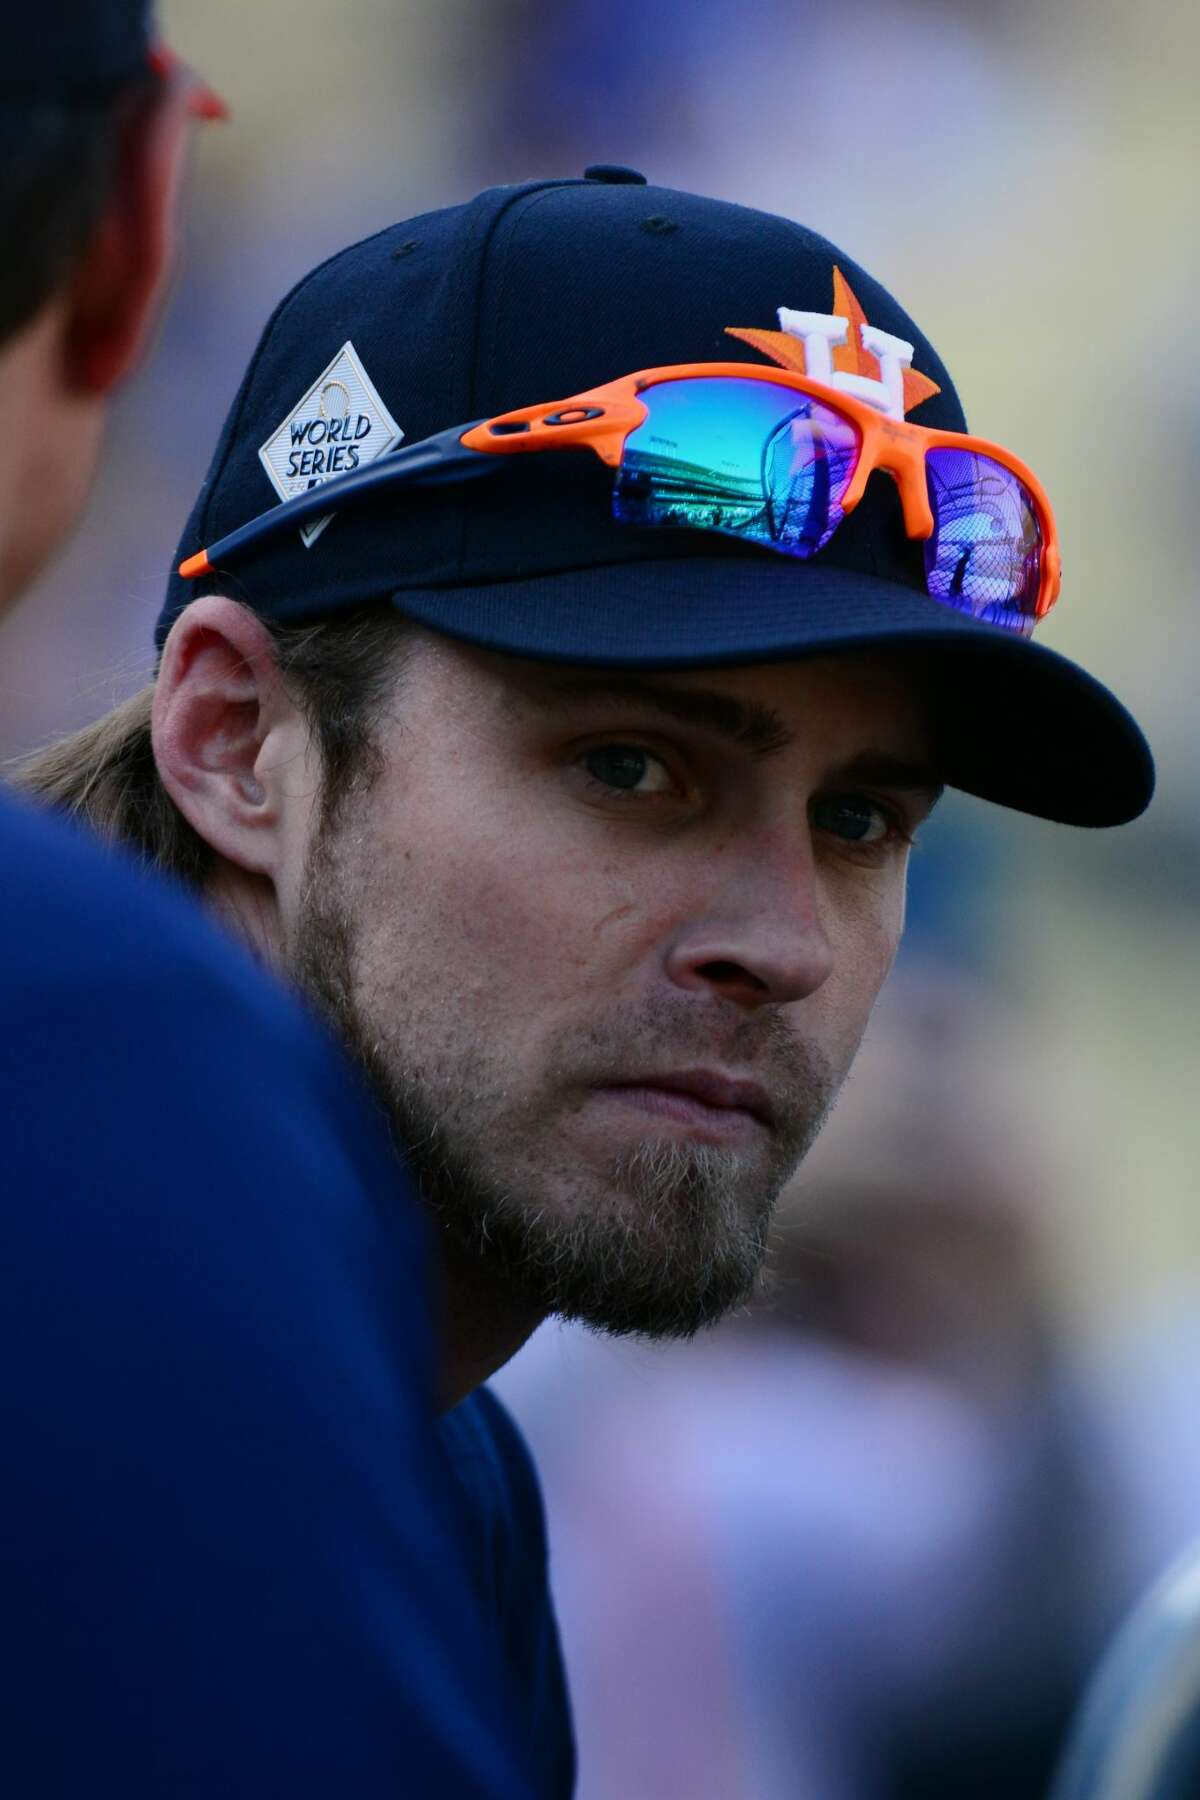 LOS ANGELES, CA - OCTOBER 25: Josh Reddick #22 of the Houston Astros looks on during batting practice prior to Game 2 of the 2017 World Series against the Los Angeles Dodgers at Dodger Stadium on Wednesday, October 25, 2017 in Los Angeles, California. (Photo by LG Patterson/MLB Photos via Getty Images)